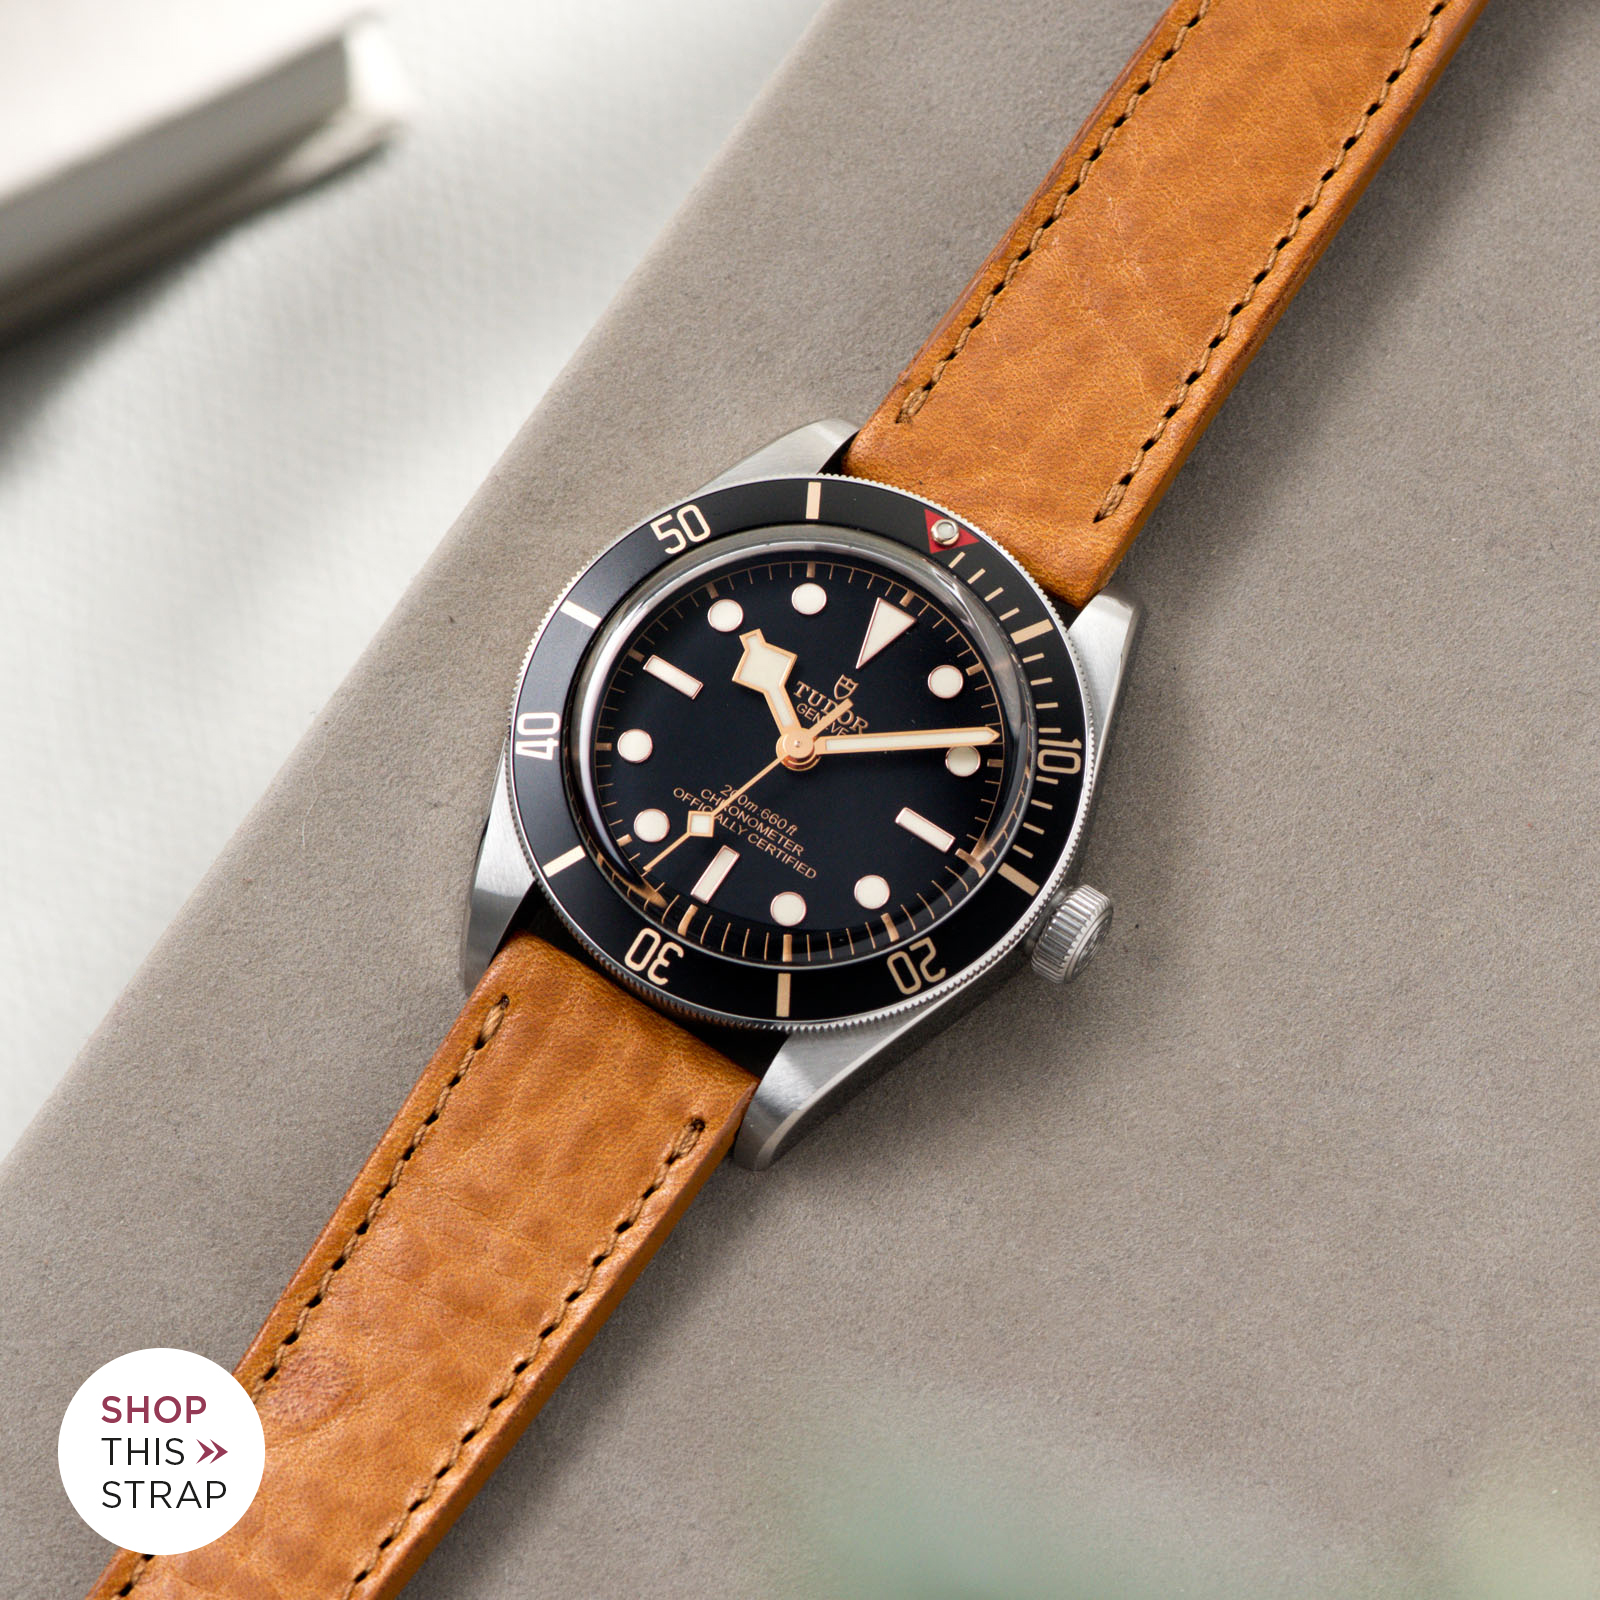 Bulang and Sons_Strap Guide_Tudor Black Bay 58_Gilt Brown Tonal Leather Watch Strap